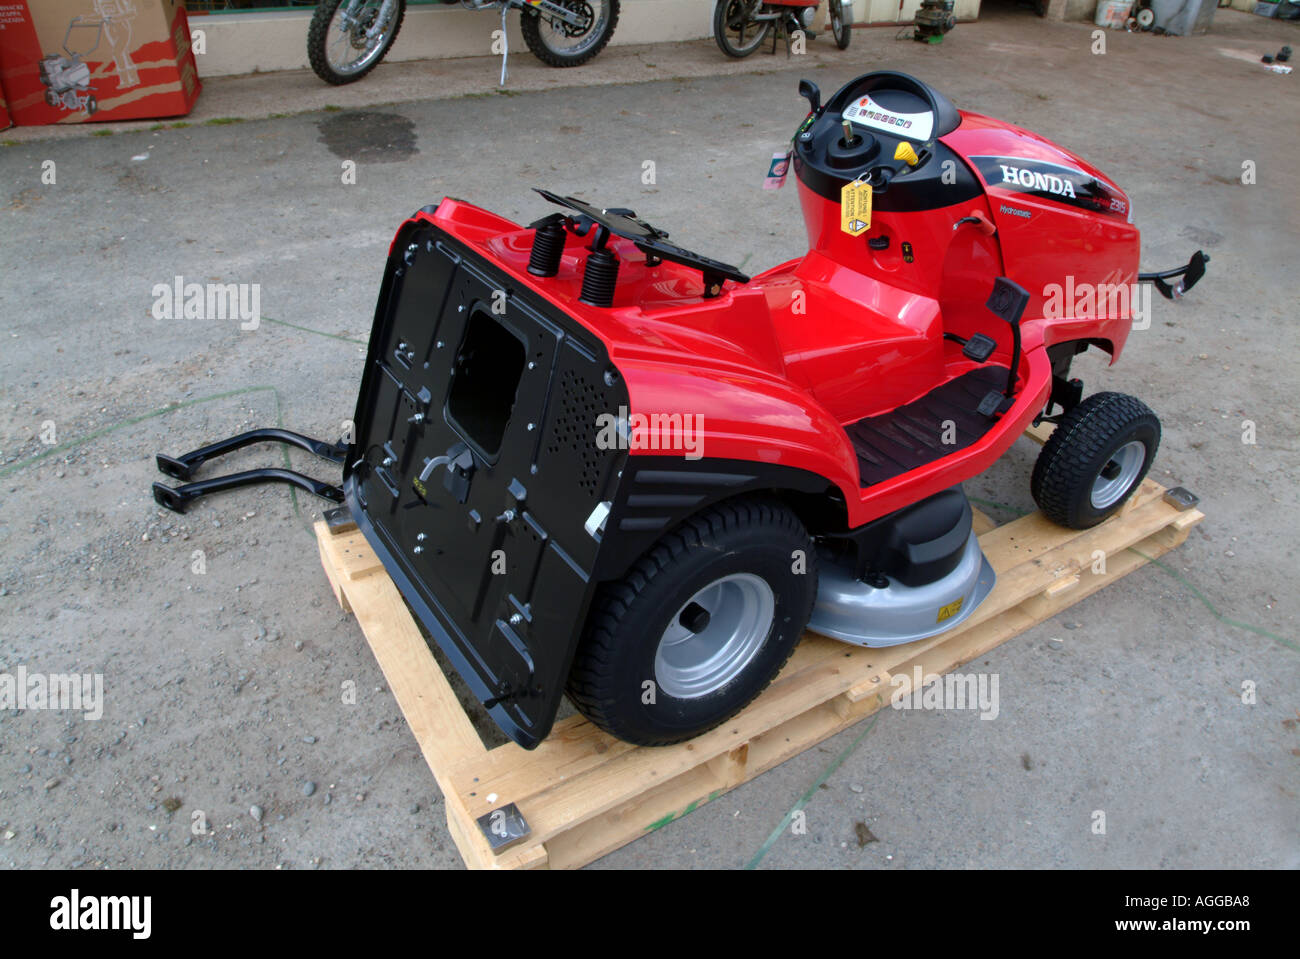 New motor mower being assembled - Stock Image